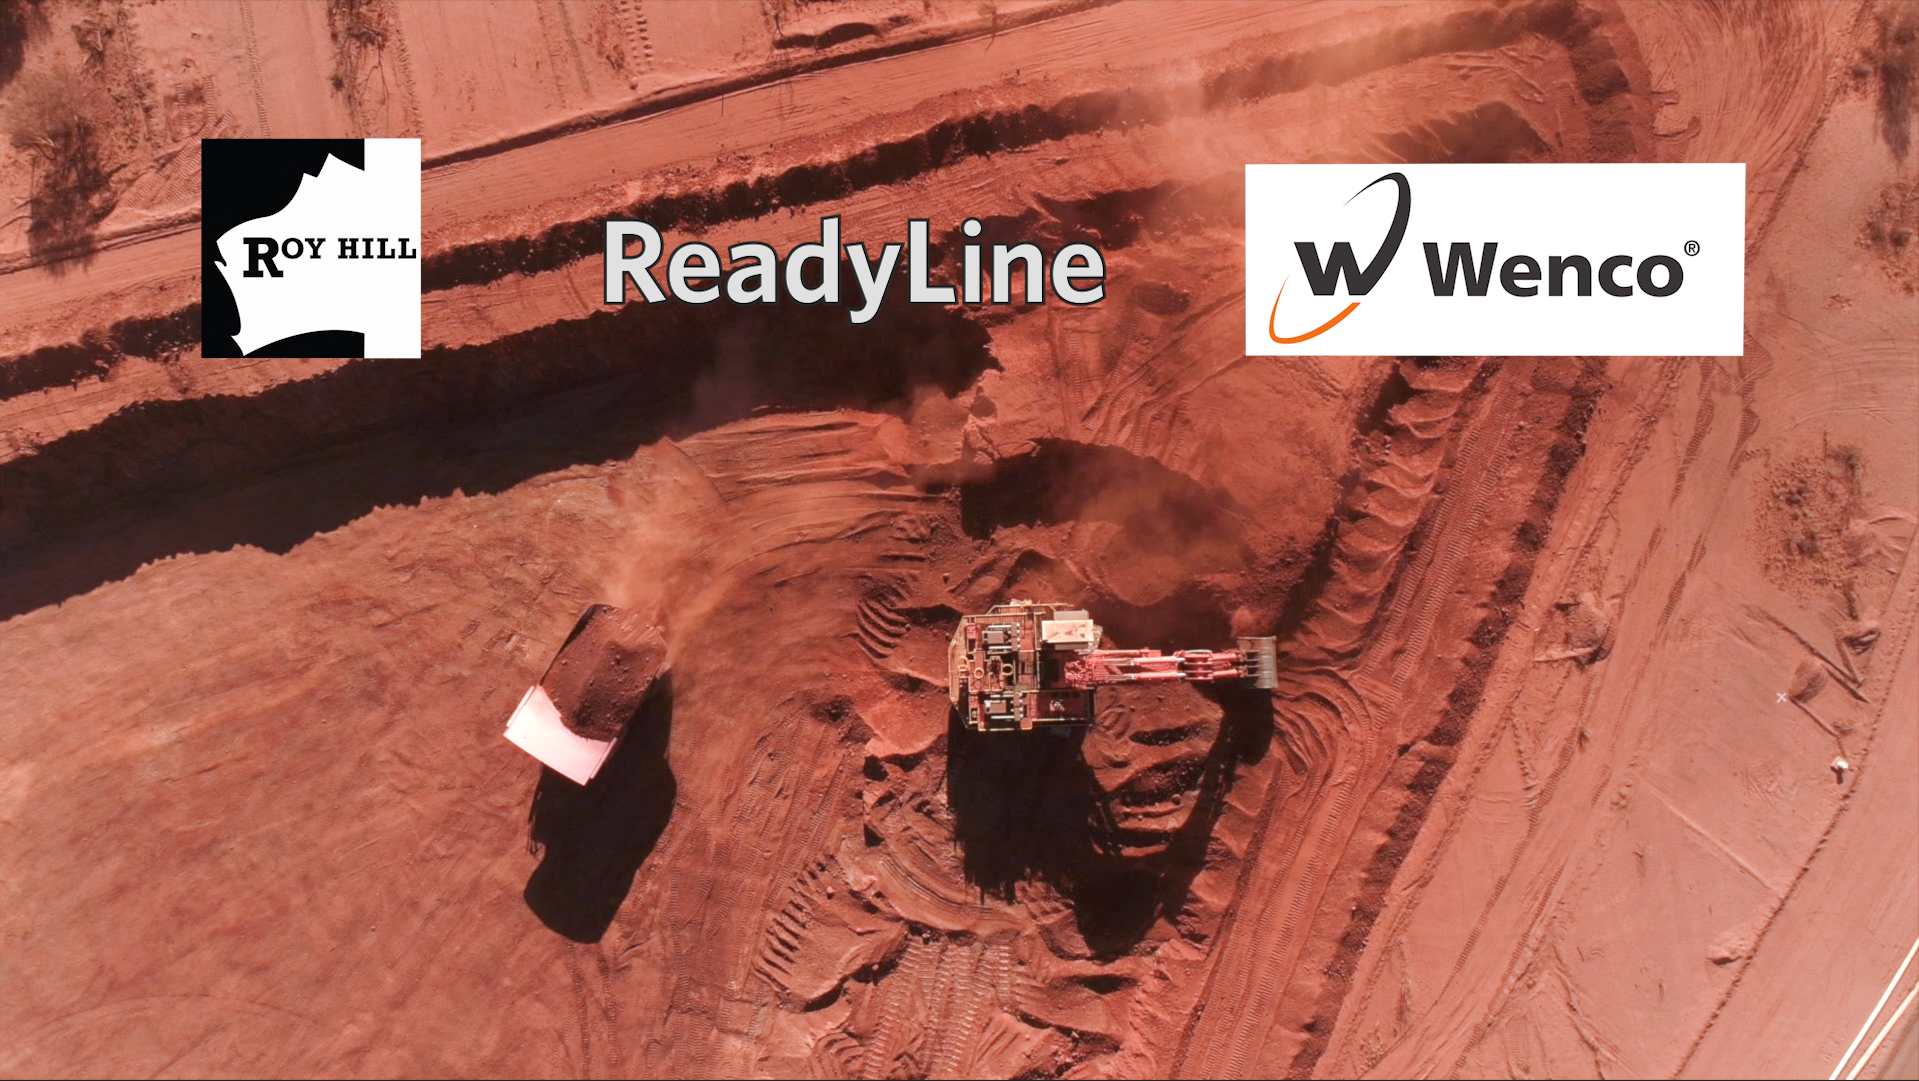 Wenco International Mining Systems Ltd. is pleased to announce that it has been contracted to supply the Wenco Fleet Management System at the Roy Hill Iron Ore Project in the Pilbara region of Western Australia.